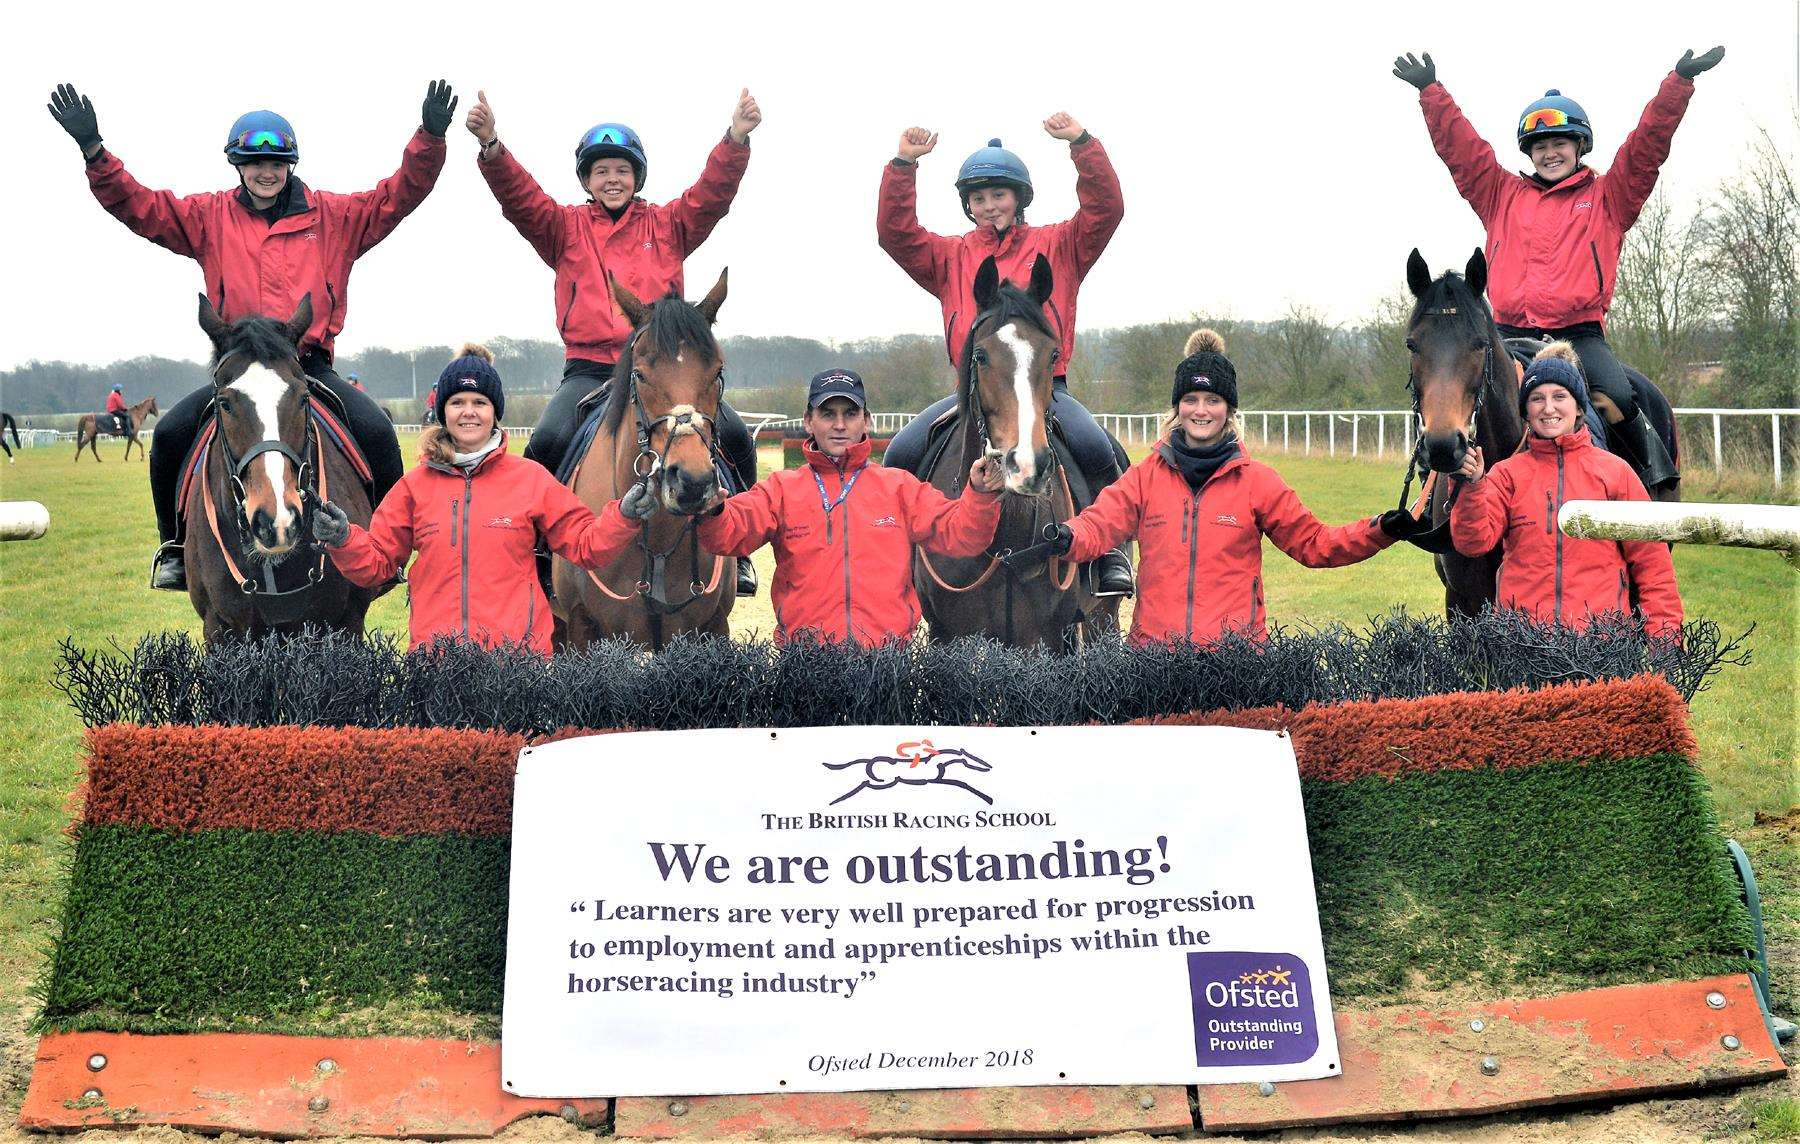 Winners ...Celebrating being graded outstanding by Ofsted are British Racing School students, back, from left: Emma Markham, Chloe Cheverton, Alana Styles and Katie McSevich, with instructors Suzy Berry, Ray O'Brien, Agnieszka Slobodzain and Anna Savage